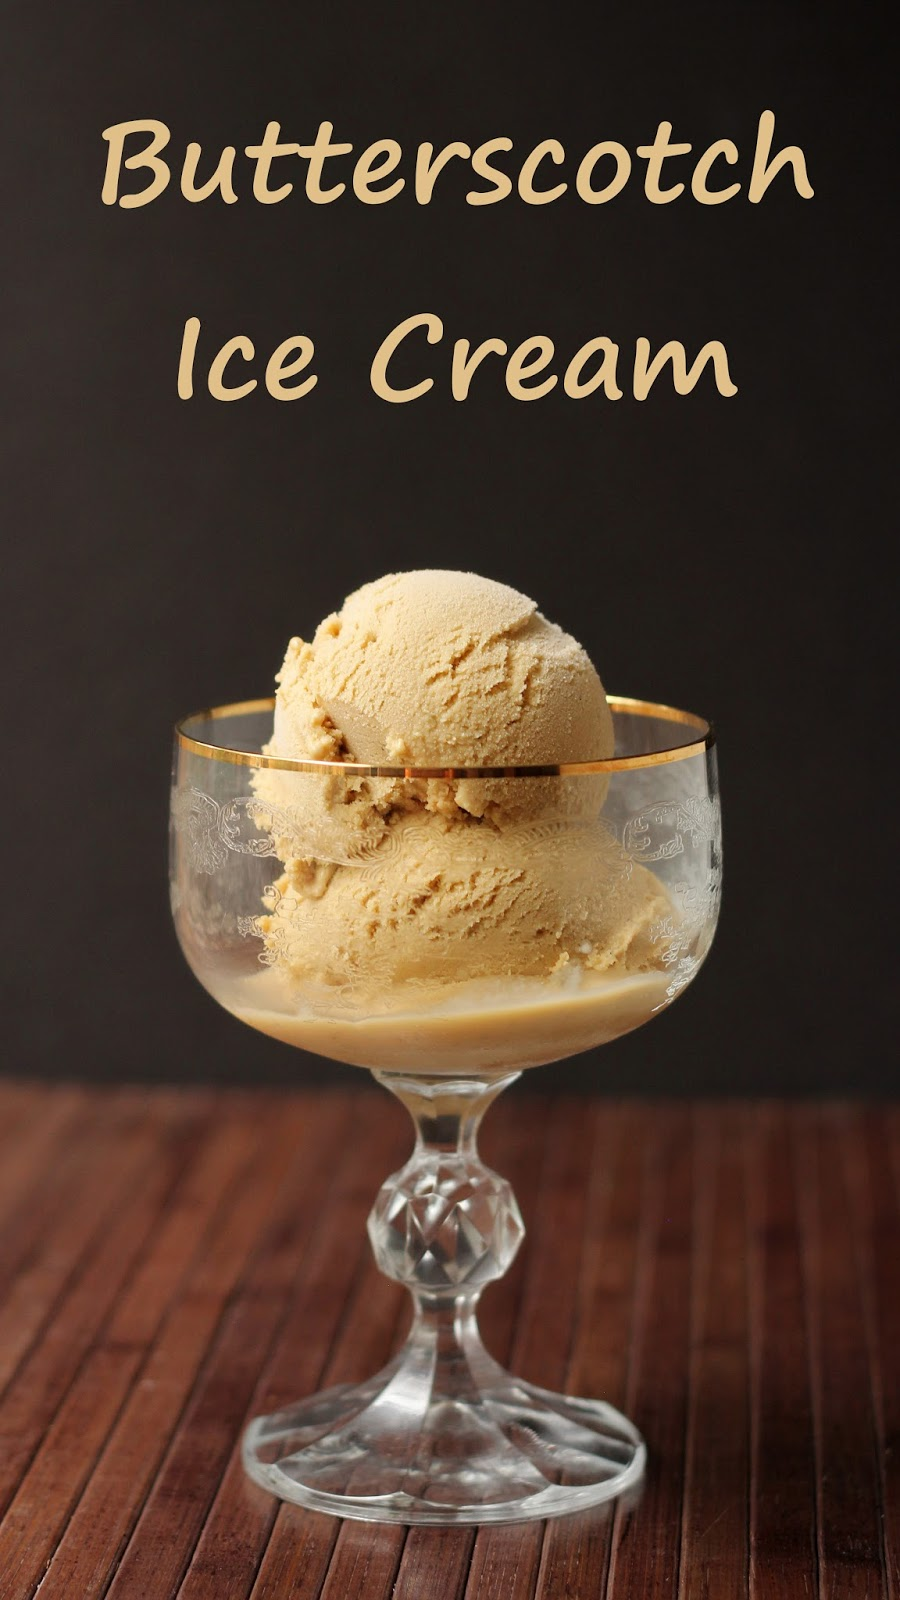 Cookistry: Butterscotch Ice Cream